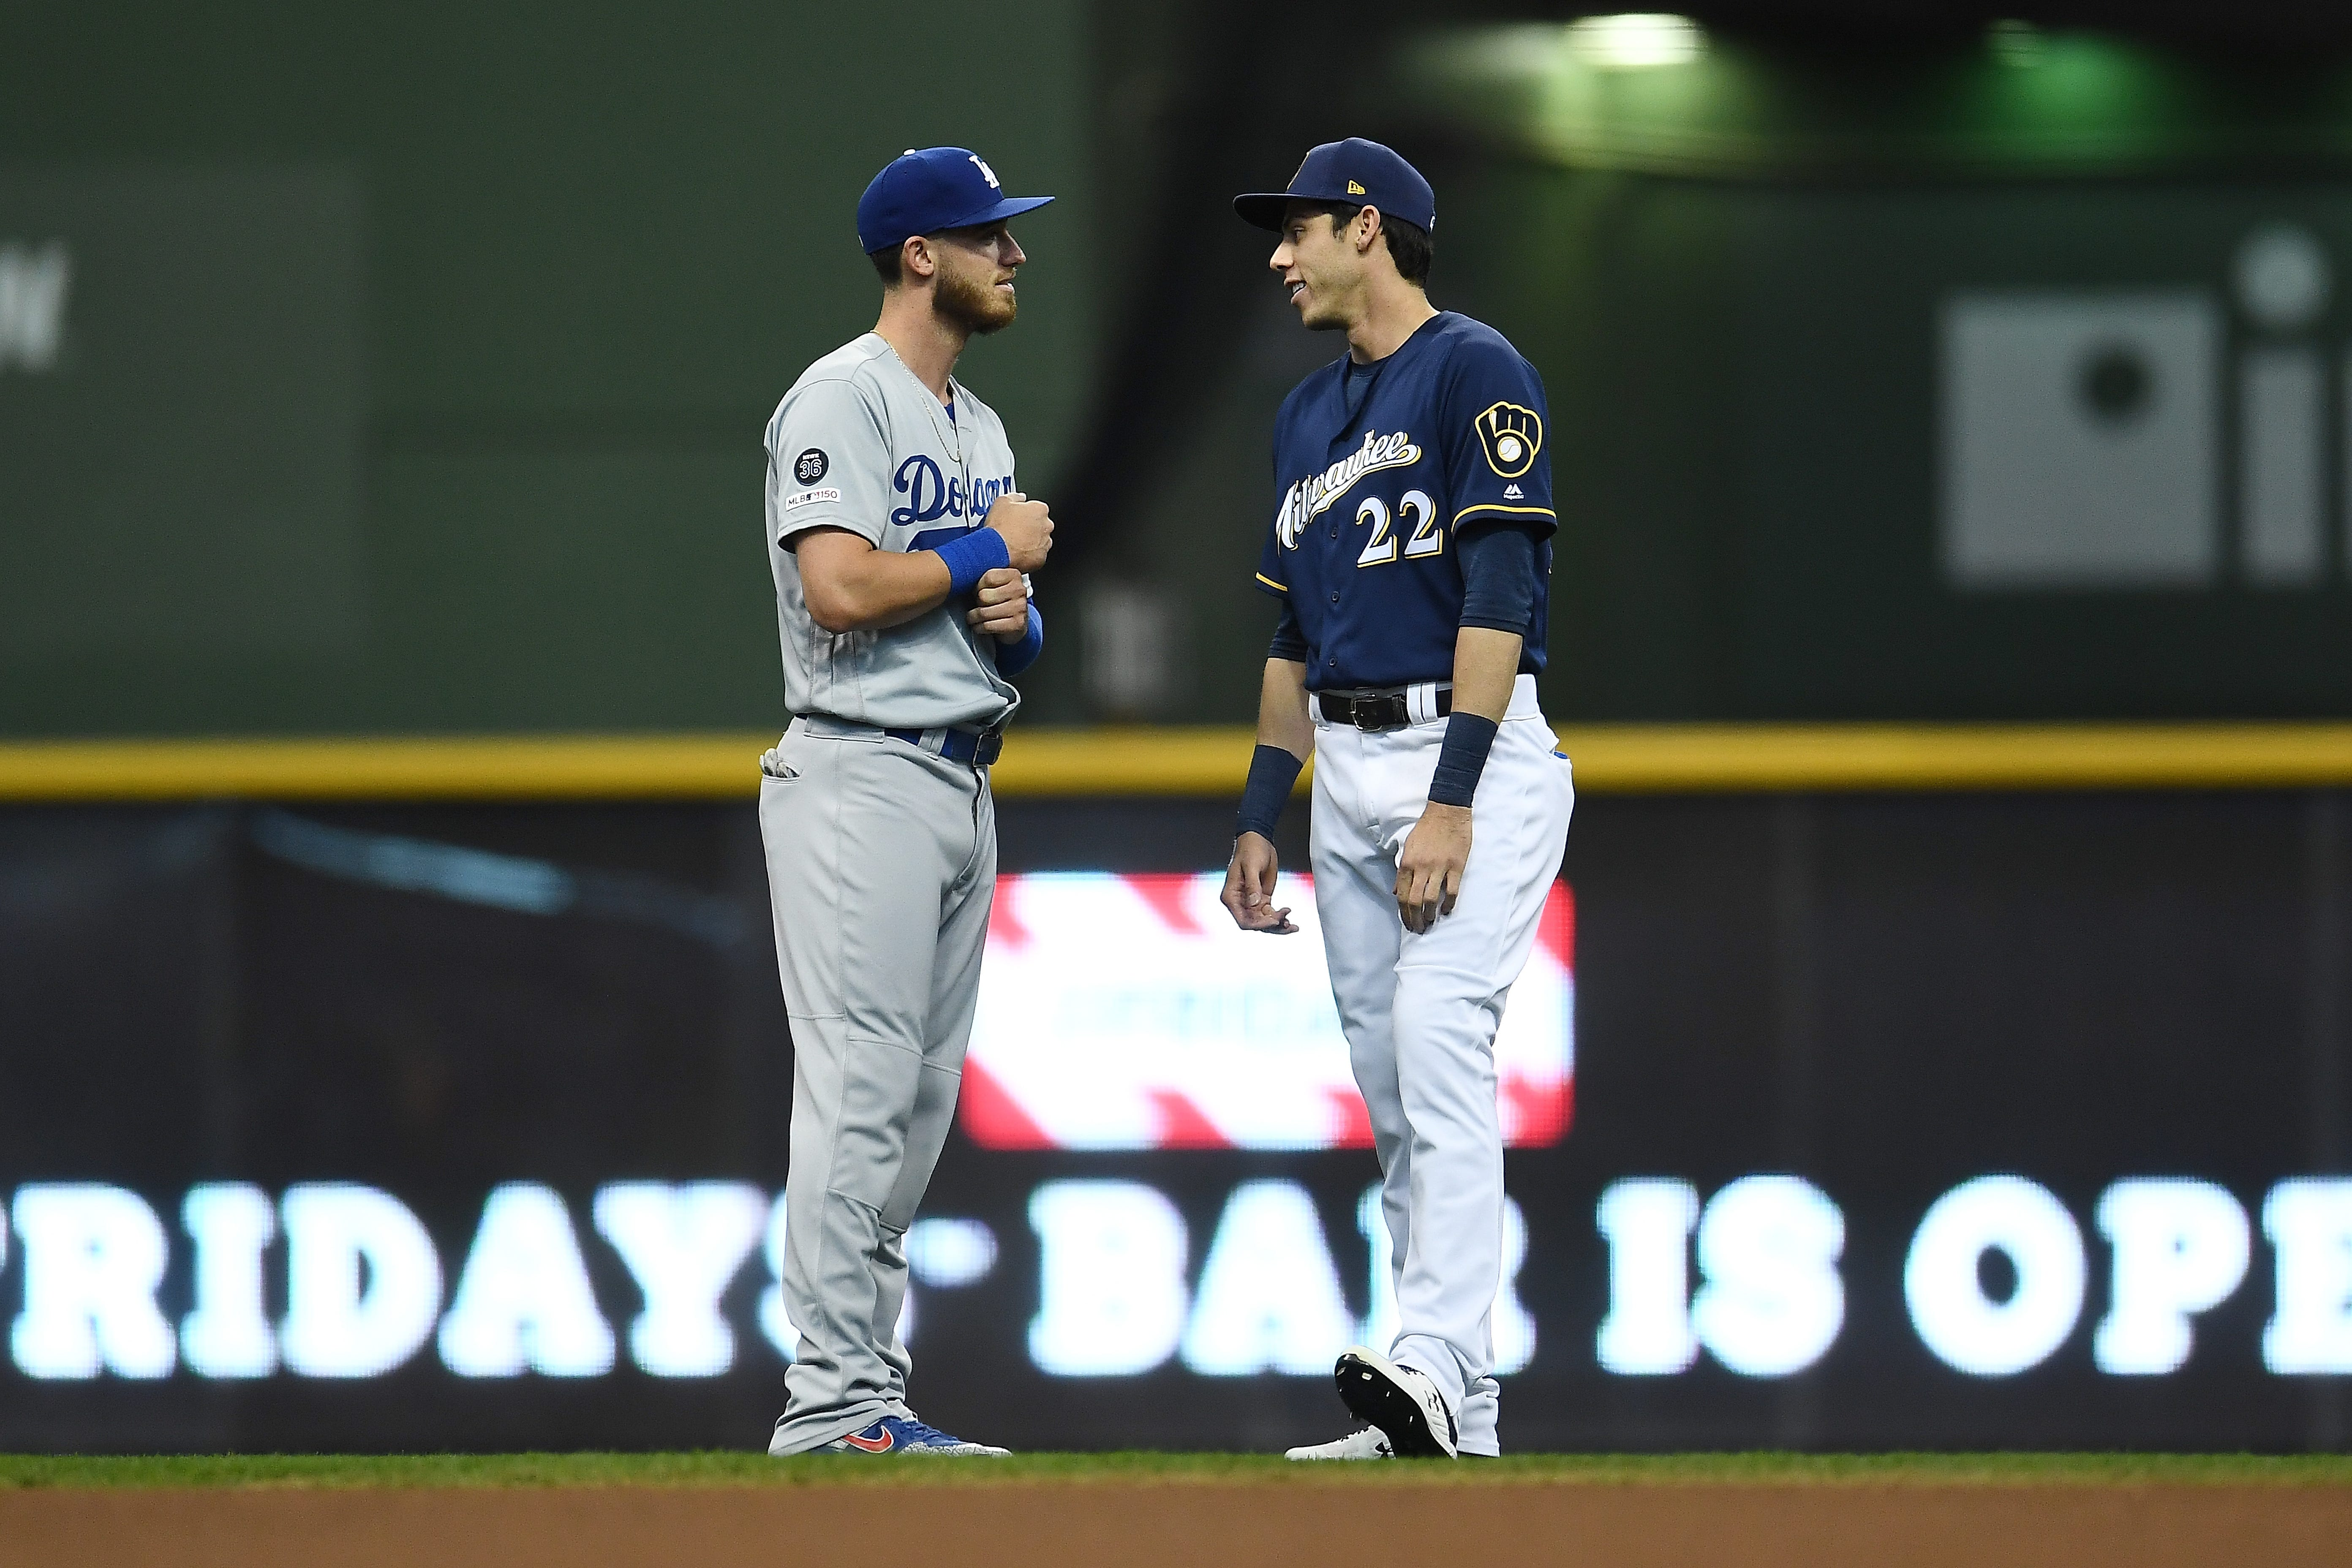 Dodgers vs. Brewers: National League Wild Card series preview, schedule, predictions